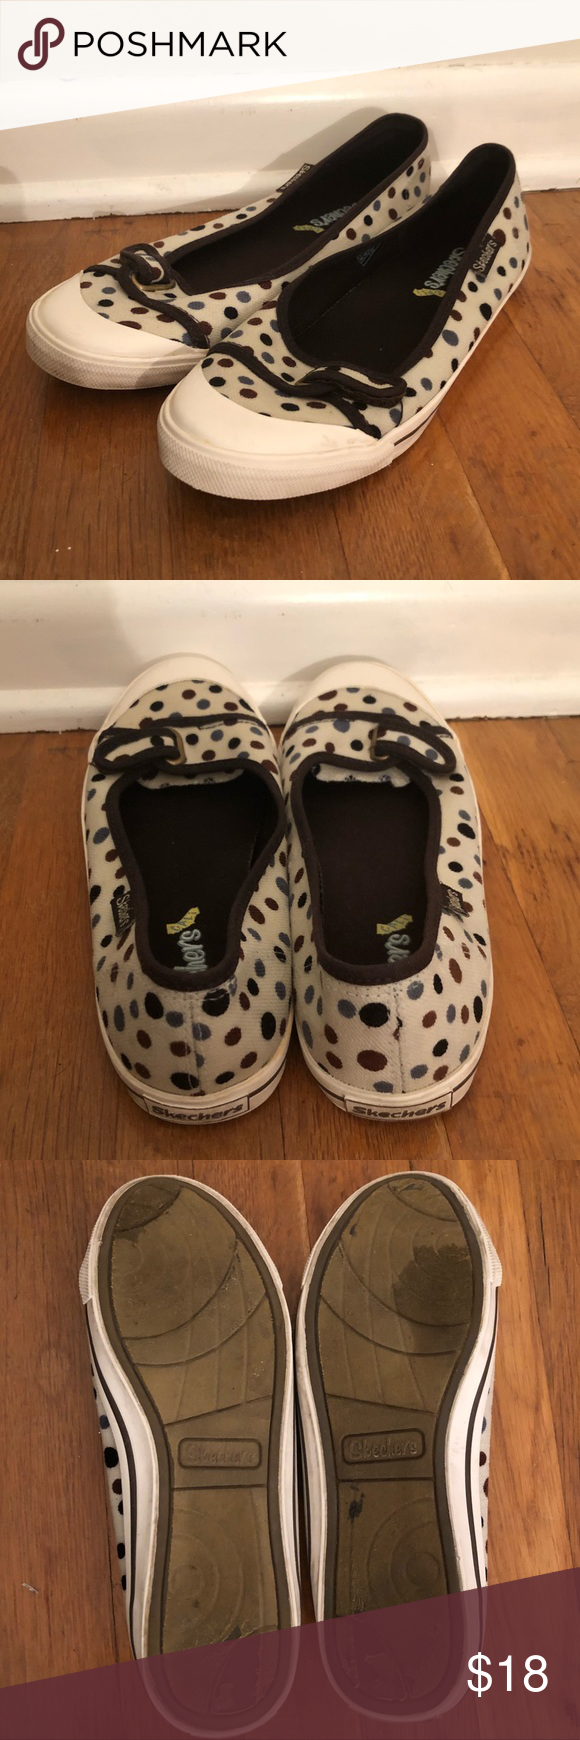 Skechers Cali Slip On Flats Size 7 5 With Images Polka Dot